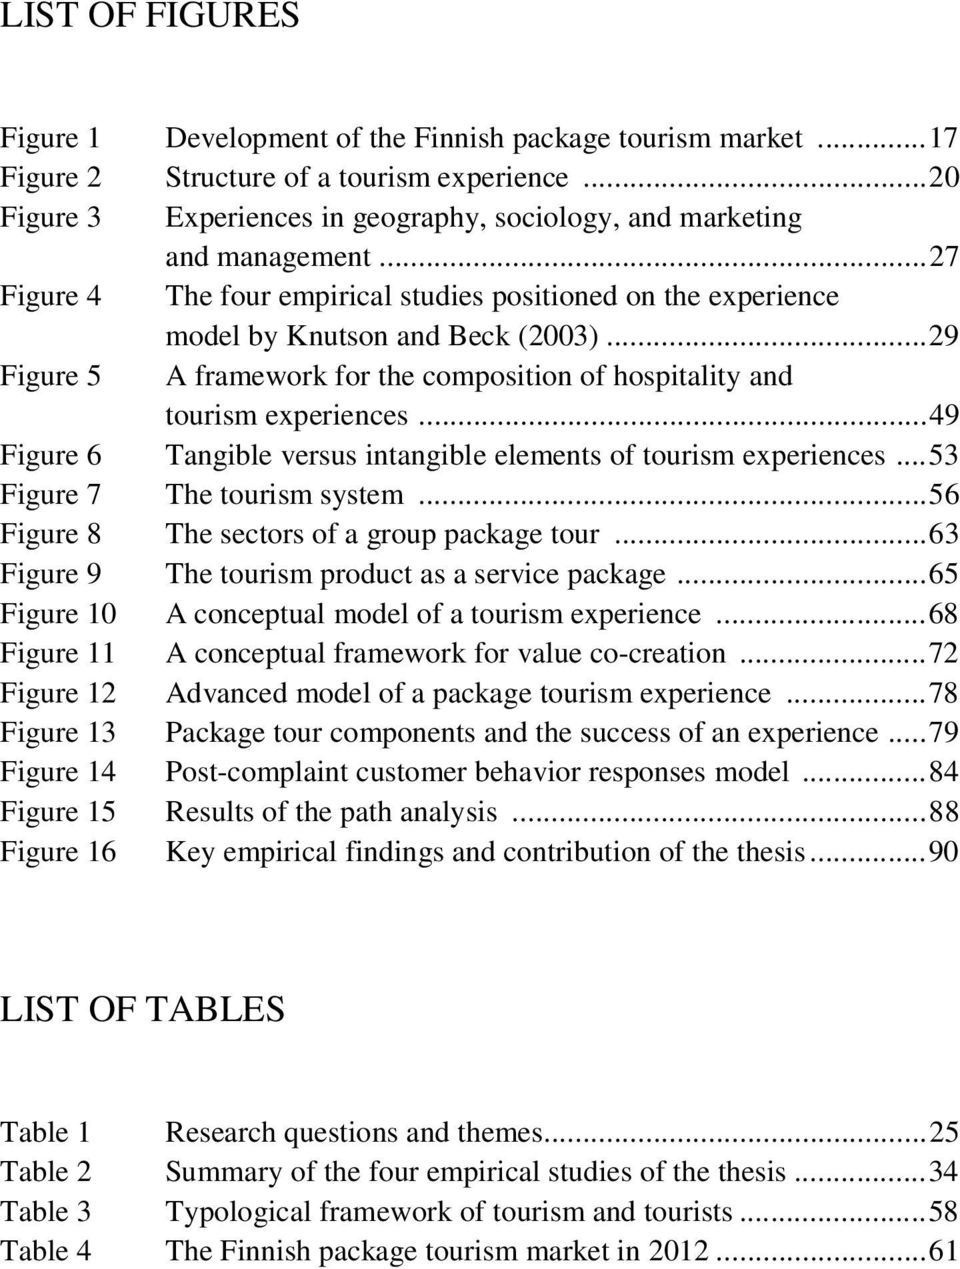 .. 29 Figure 5 A framework for the composition of hospitality and tourism experiences... 49 Figure 6 Tangible versus intangible elements of tourism experiences... 53 Figure 7 The tourism system.